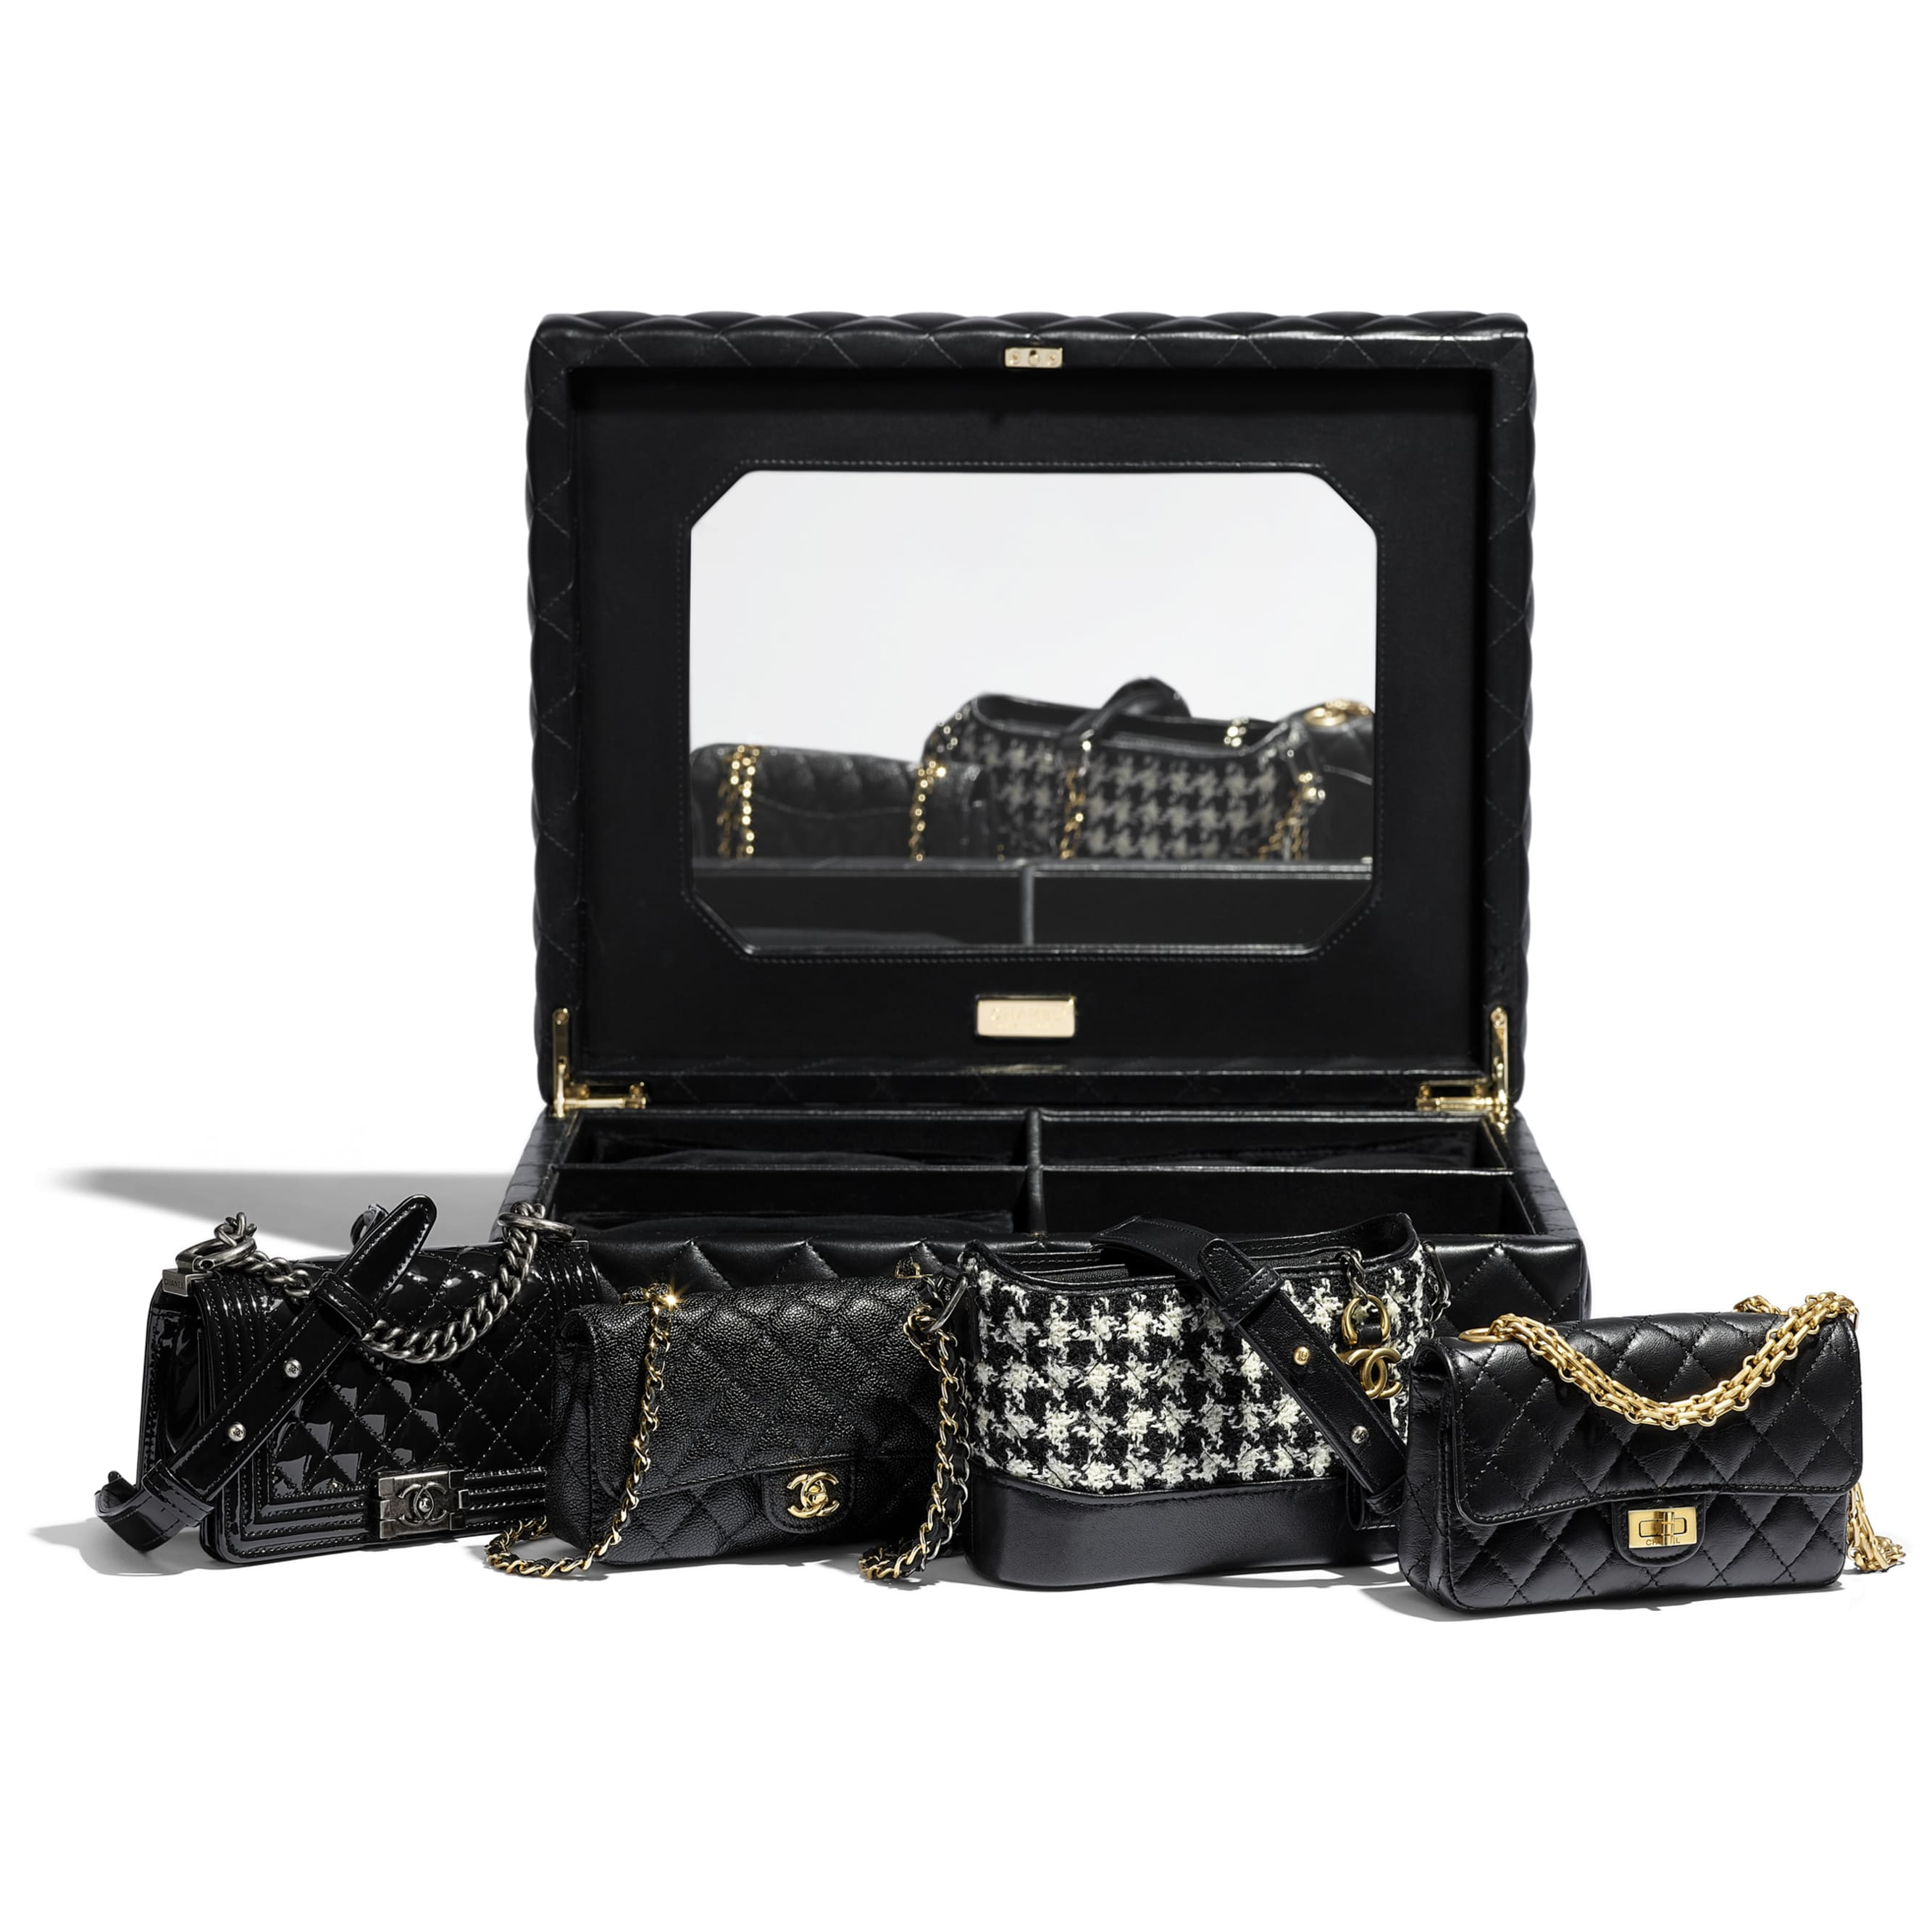 Set of 4 Minis Bags - Black - Lambskin, Calfskin, Tweed, Gold-Tone, Silver-Tone & Ruthenium-Finish Metal - CHANEL - Alternative view - see standard sized version